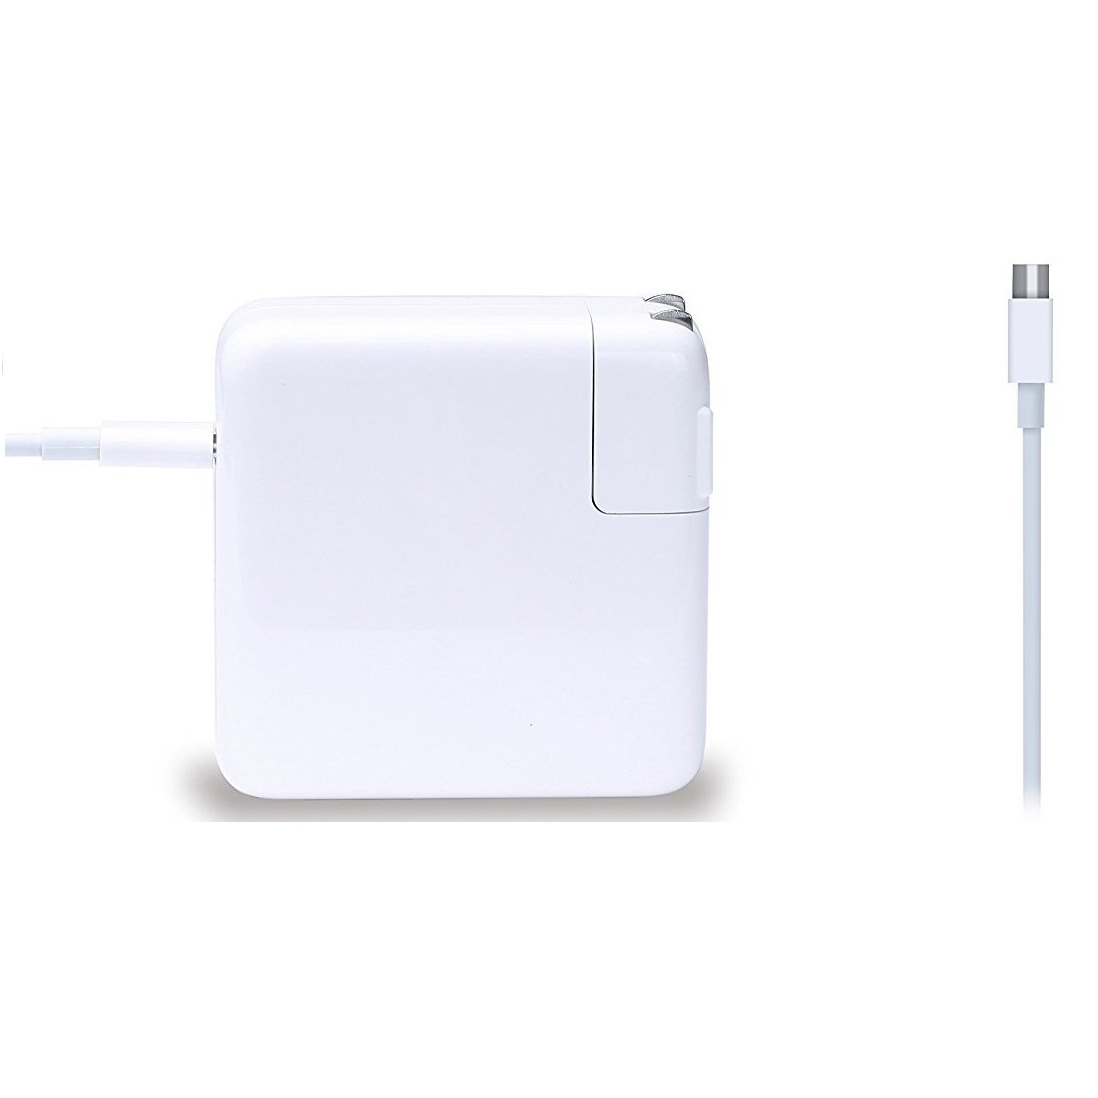 Sạc 61W USB-C Power Adapter MNF72ZA/A